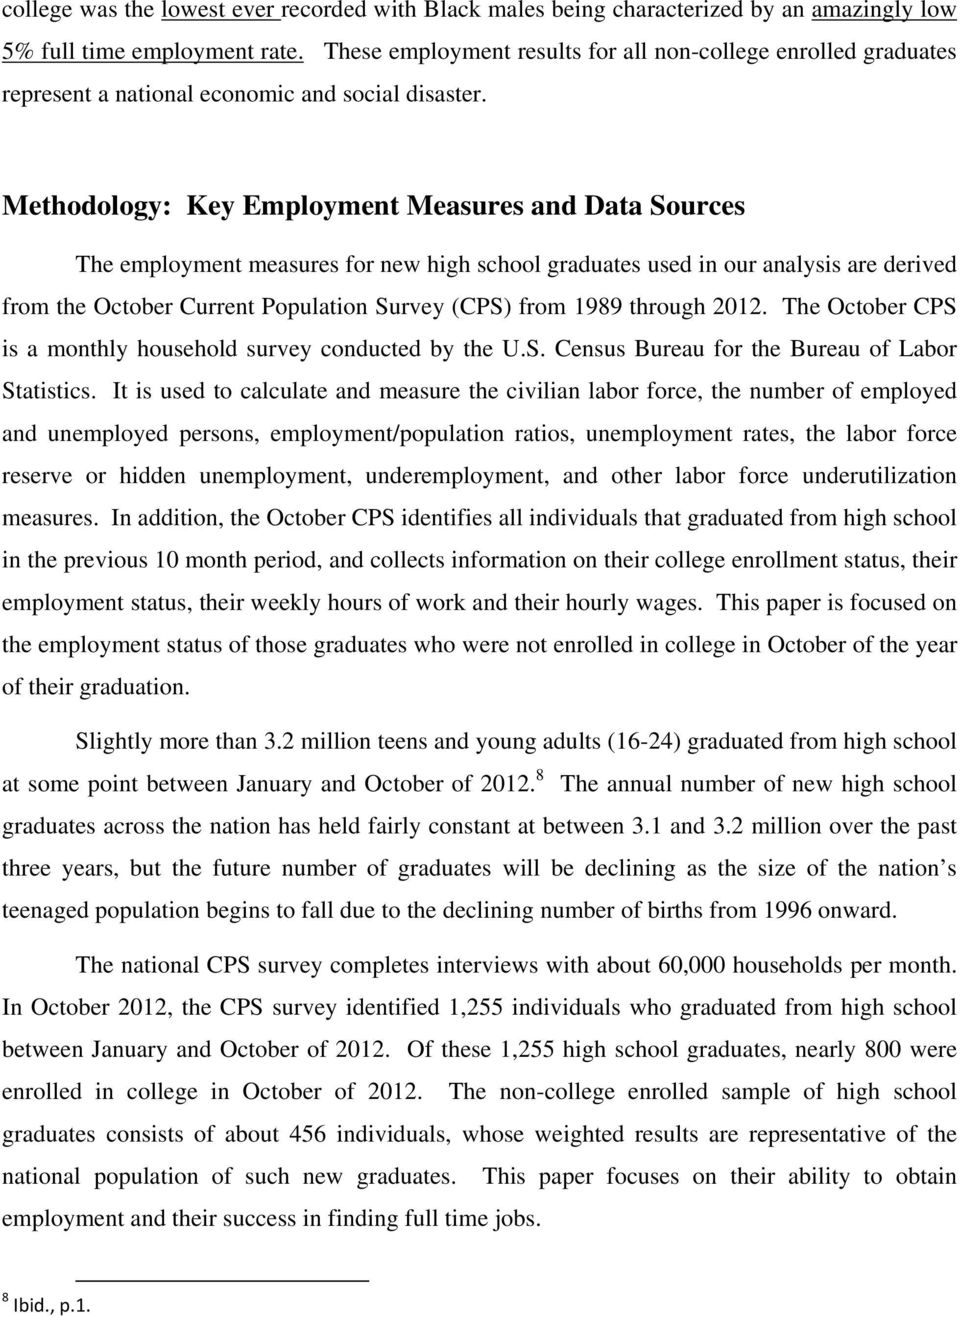 Methodology: Key Employment Measures and Data Sources The employment measures for new high school graduates used in our analysis are derived from the October Current Population Survey (CPS) from 1989